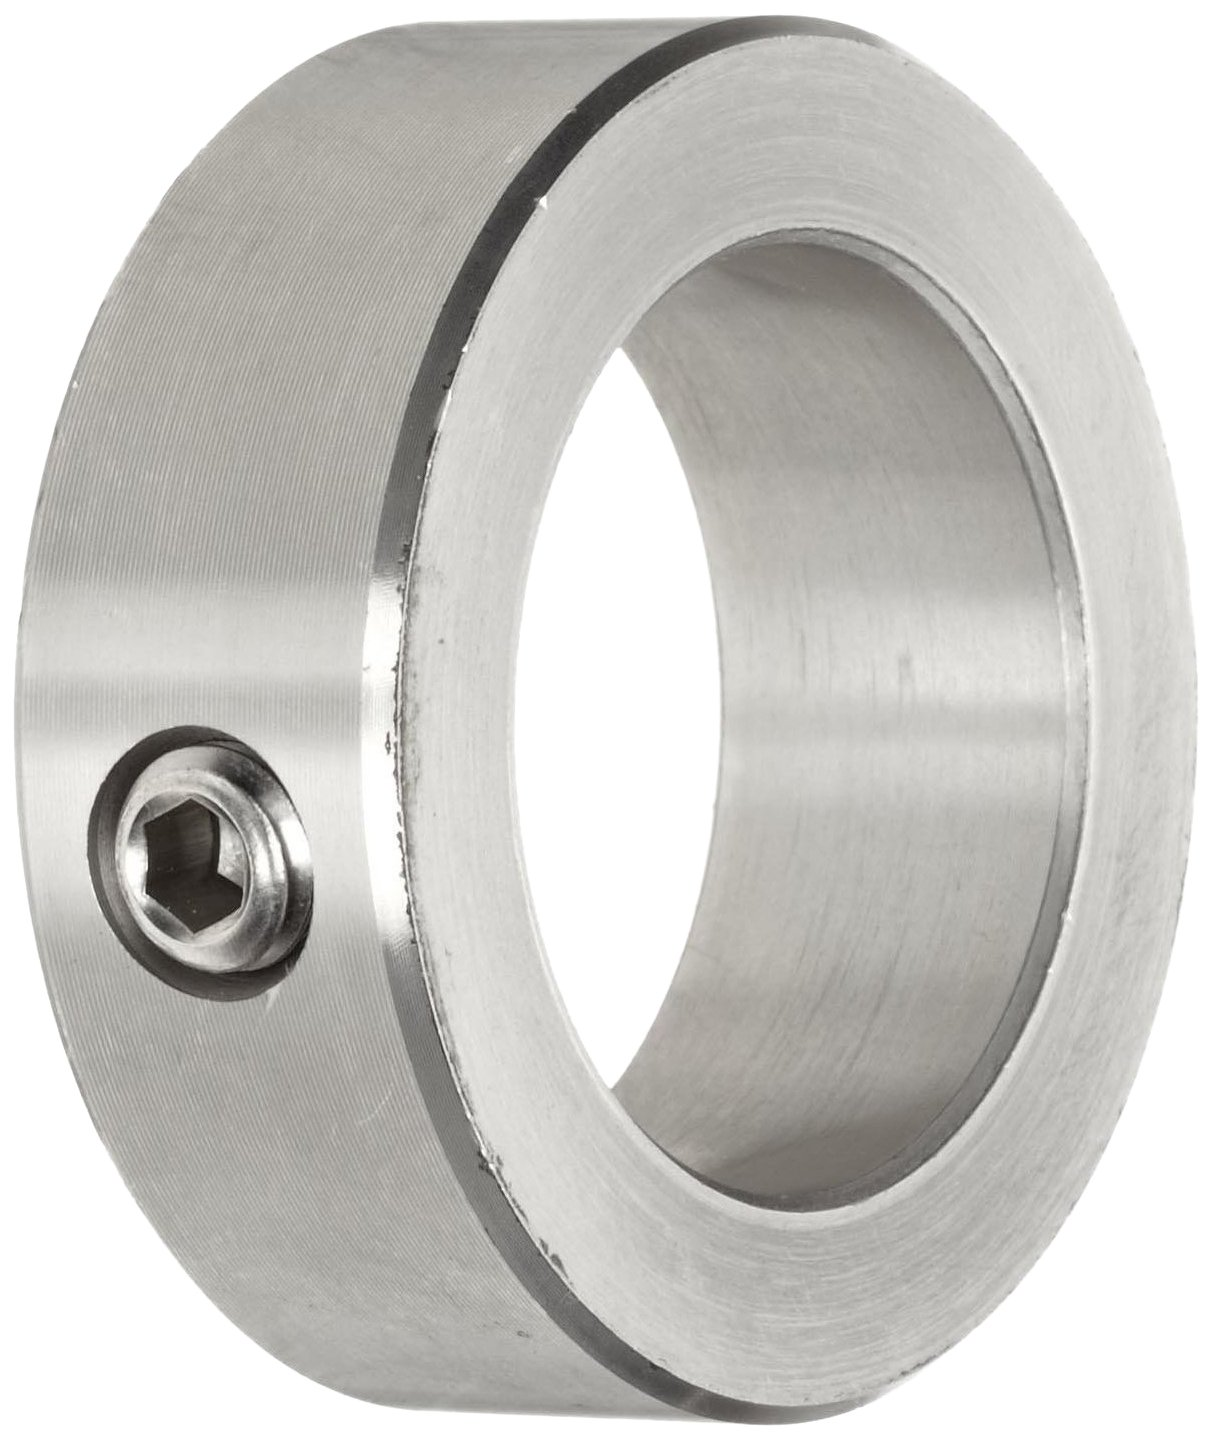 "B000P0Q95K Climax Metal C-112-S Shaft Collar, One Piece, Set Screw Style, Stainless Steel, 1-1/8"" Bore, 1-3/4"" OD, 5/8"" Width, With 5/16-18 x 5/16 Set Screw 71zq33ElwiL"